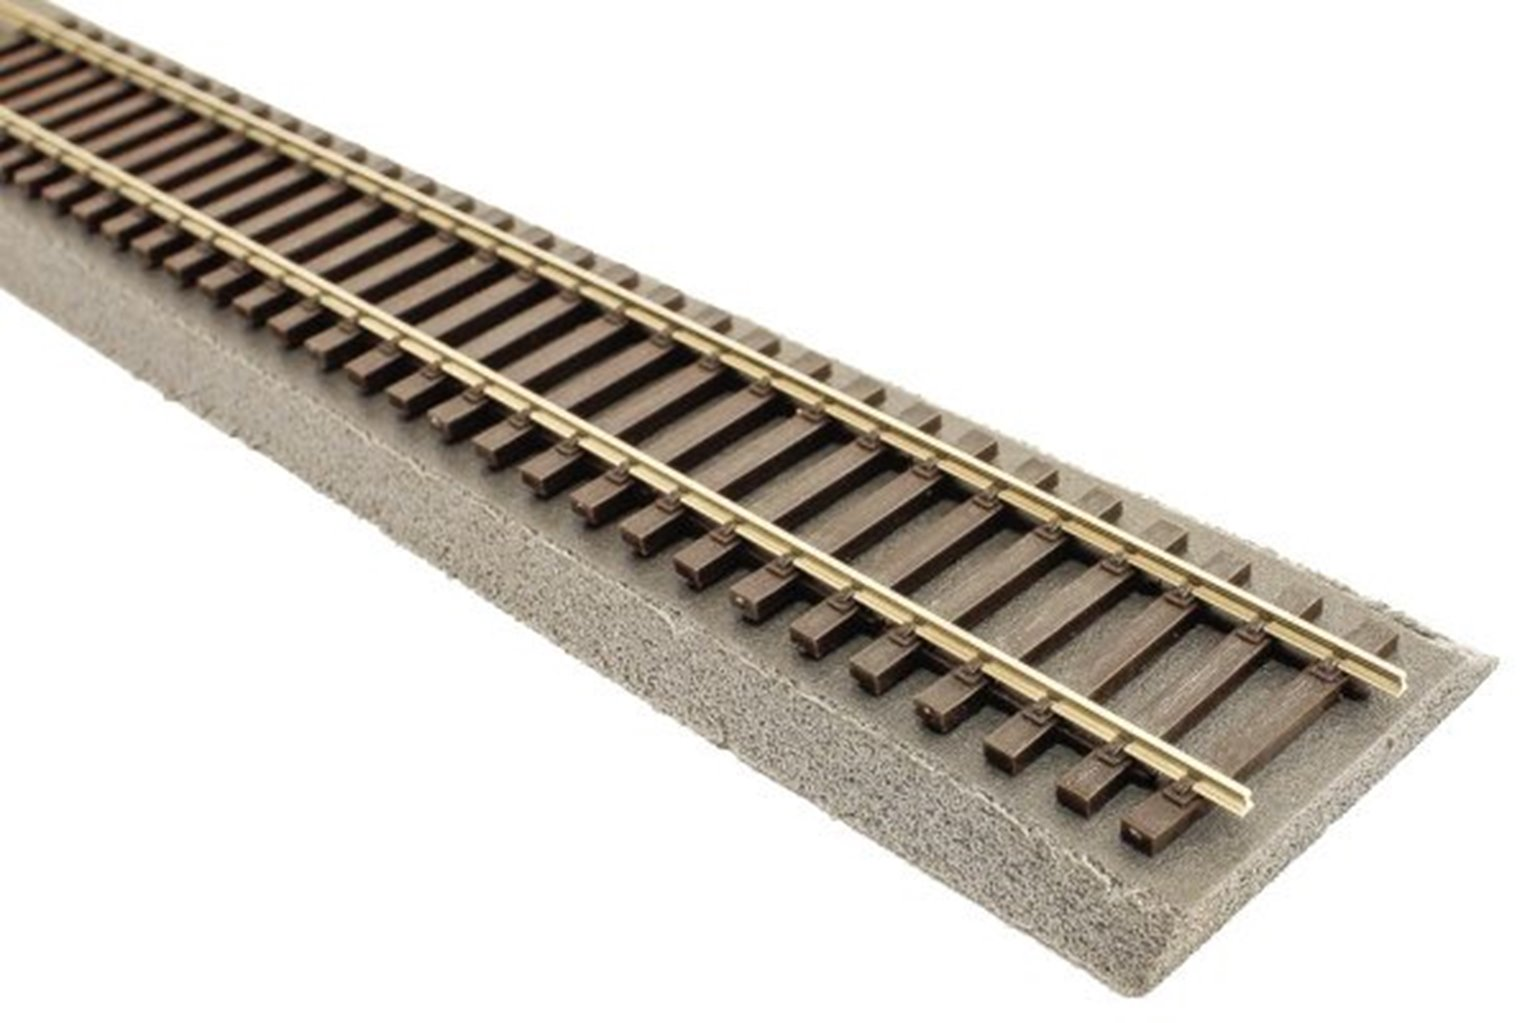 Trackbed OO/HO Scale 5mm (31m/100ft.)